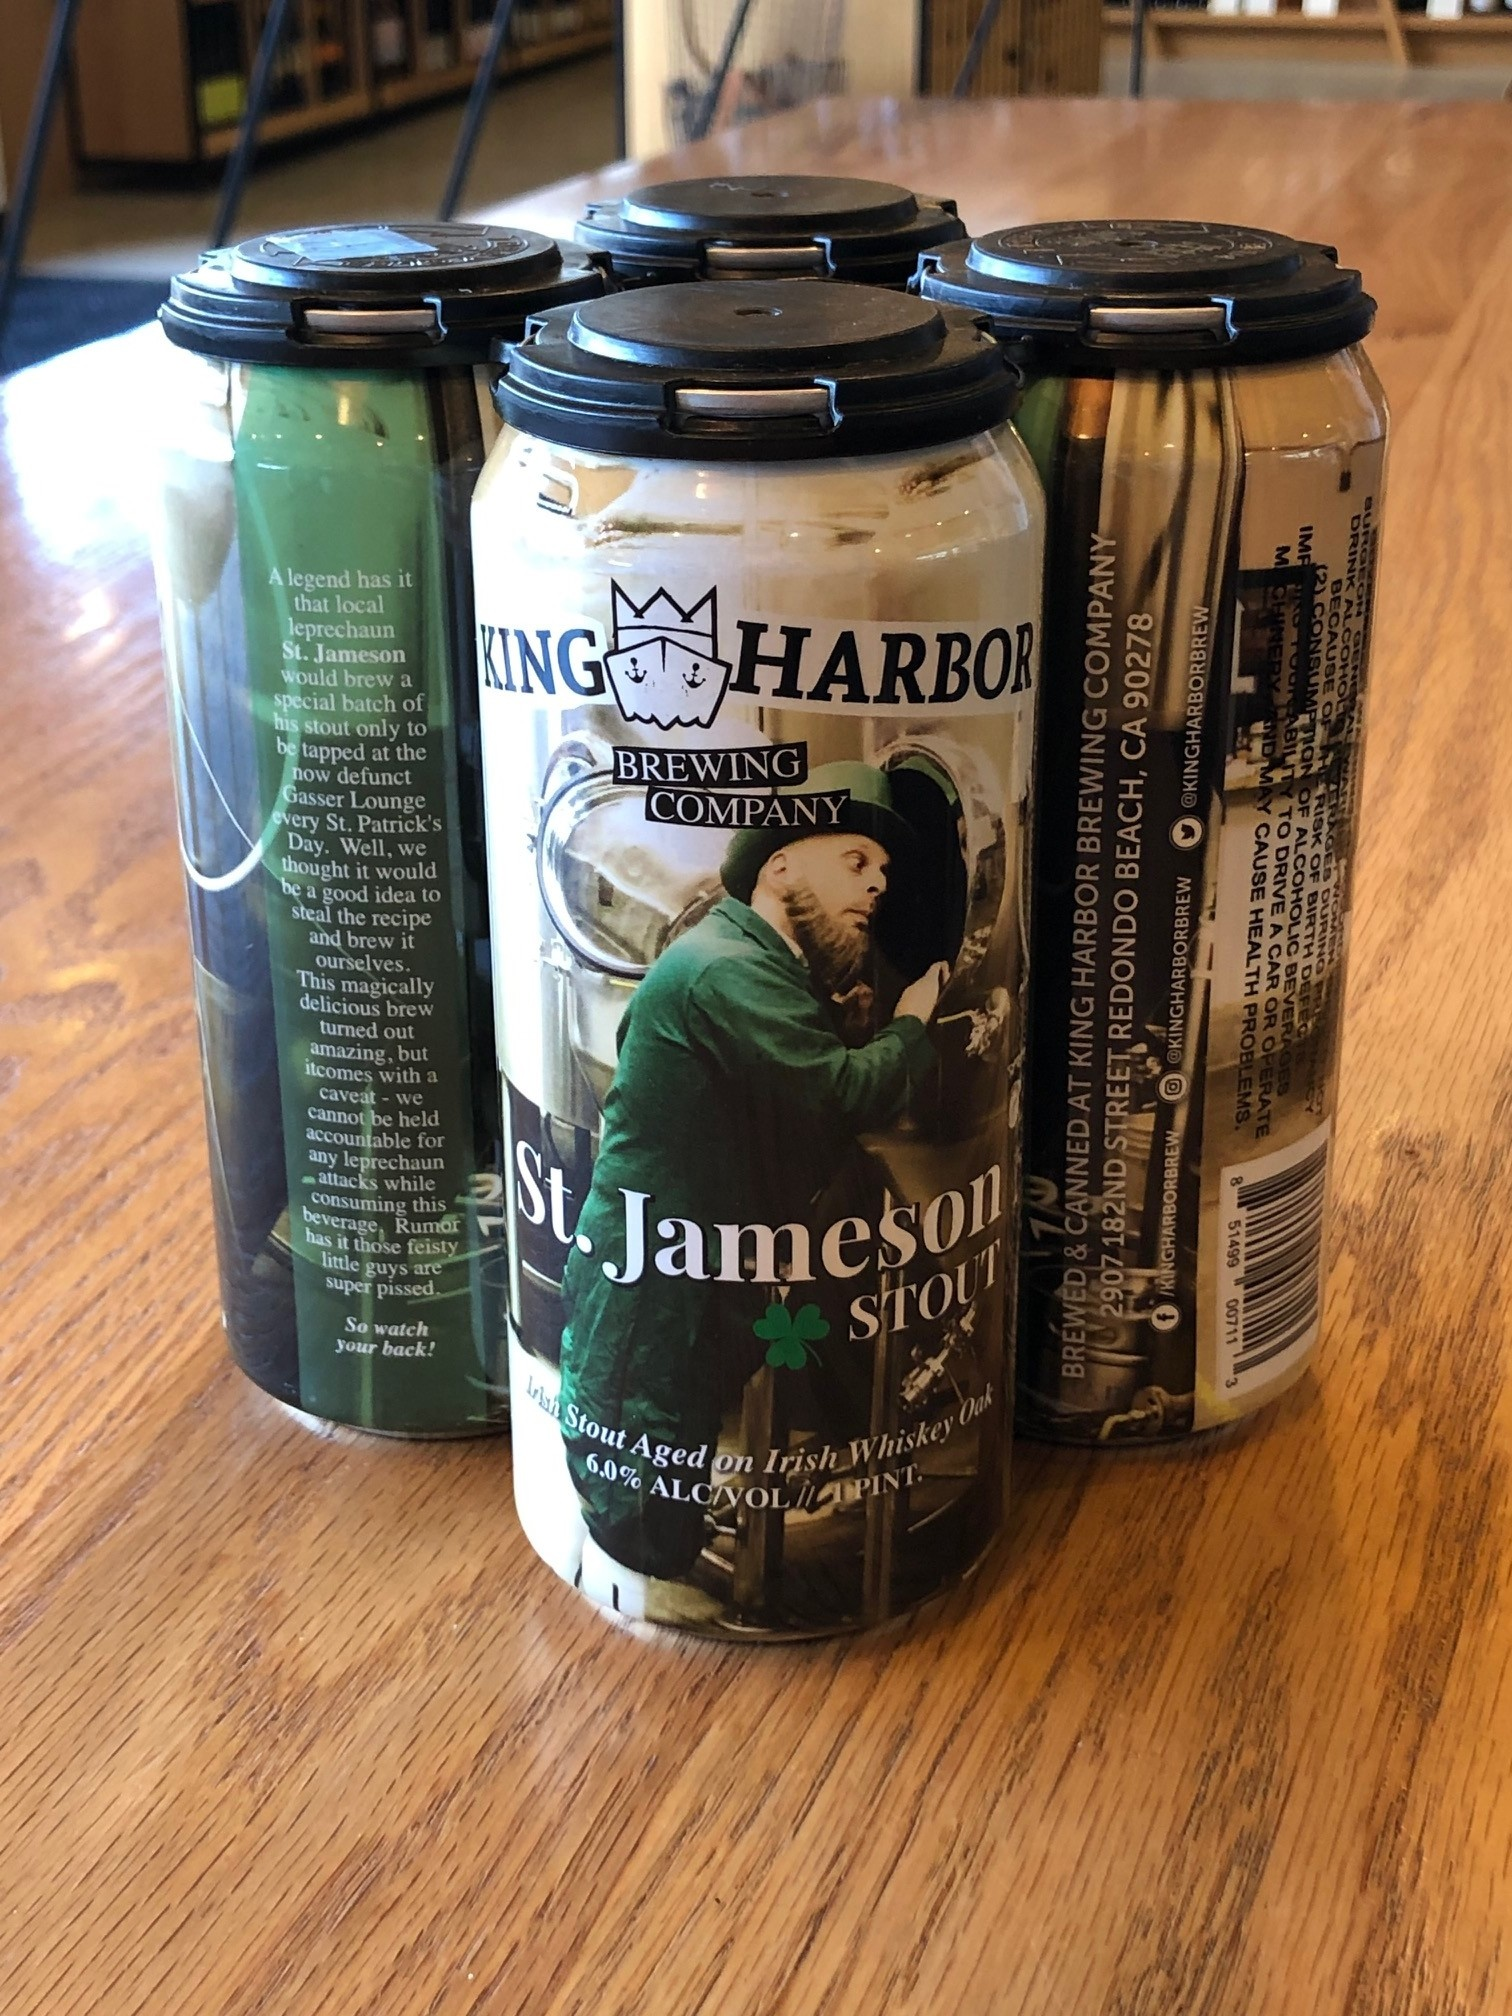 King Harbor Brewing Company King Harbor Brewing St. Jameson Stout 16oz 4pk